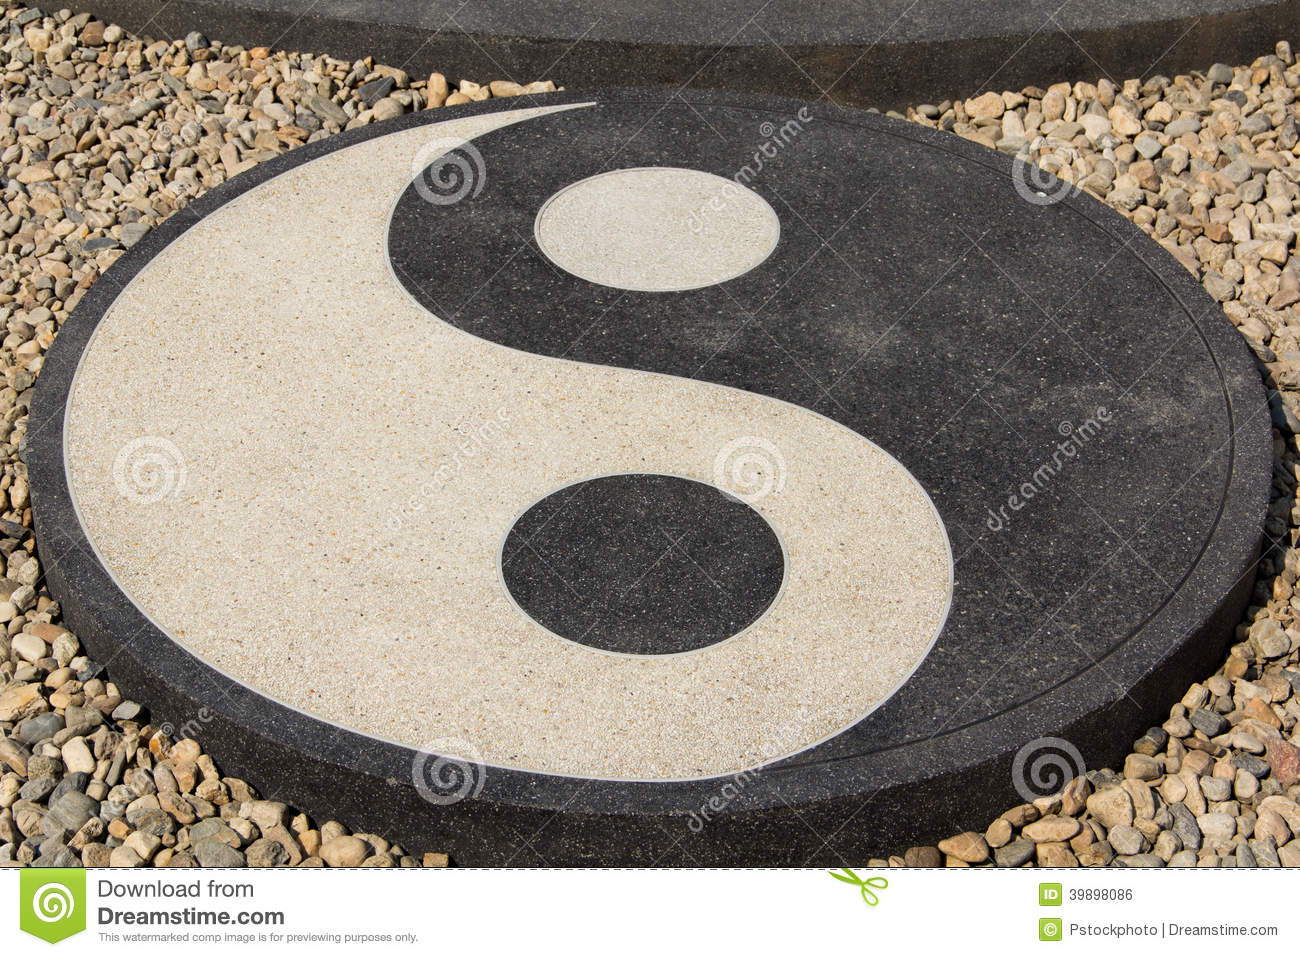 Cercle de yin yang en philosophie chinoise photo stock for Jardin yin yang